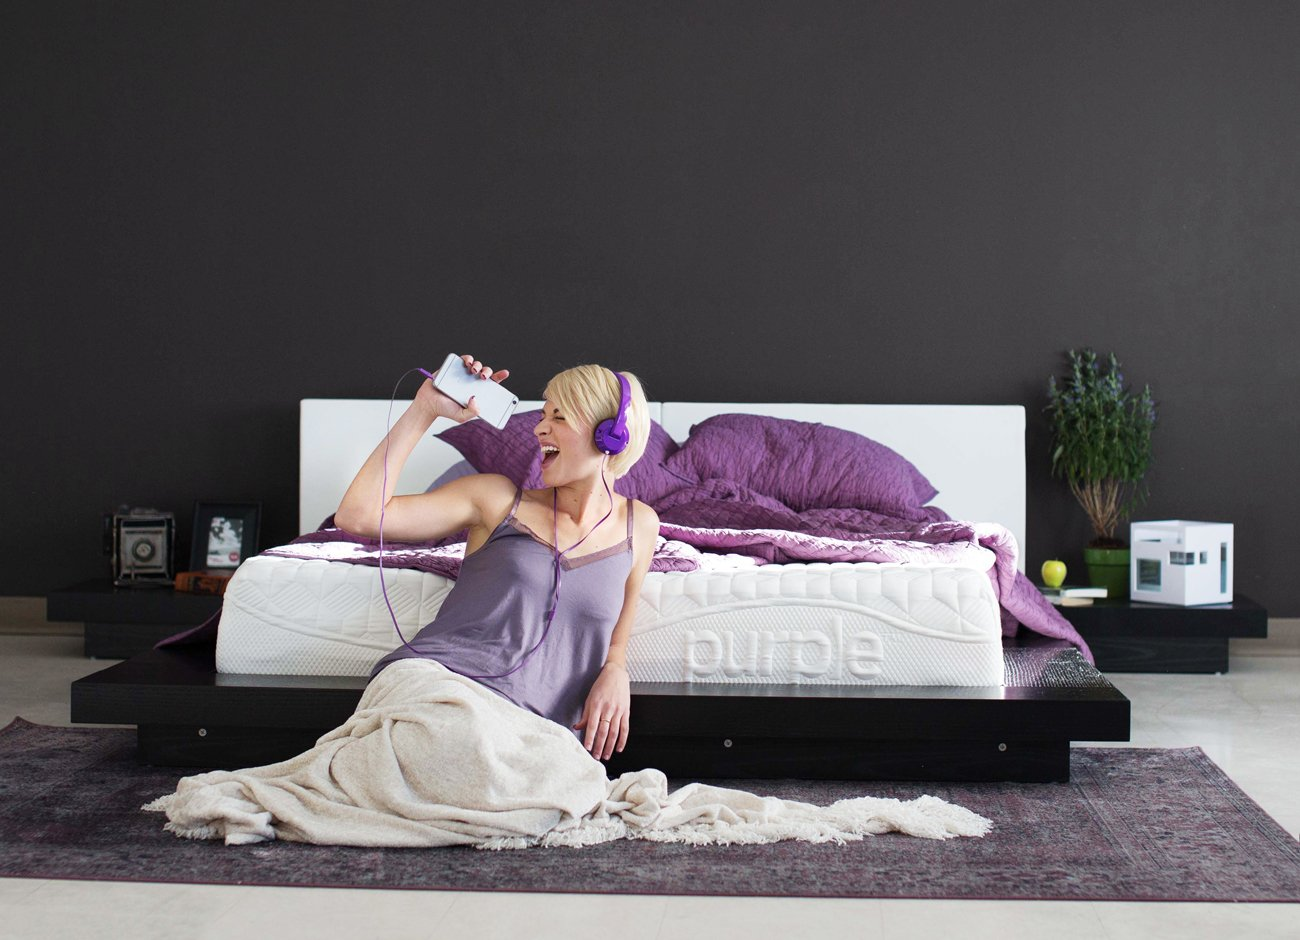 Buy Purple Mattress Now!